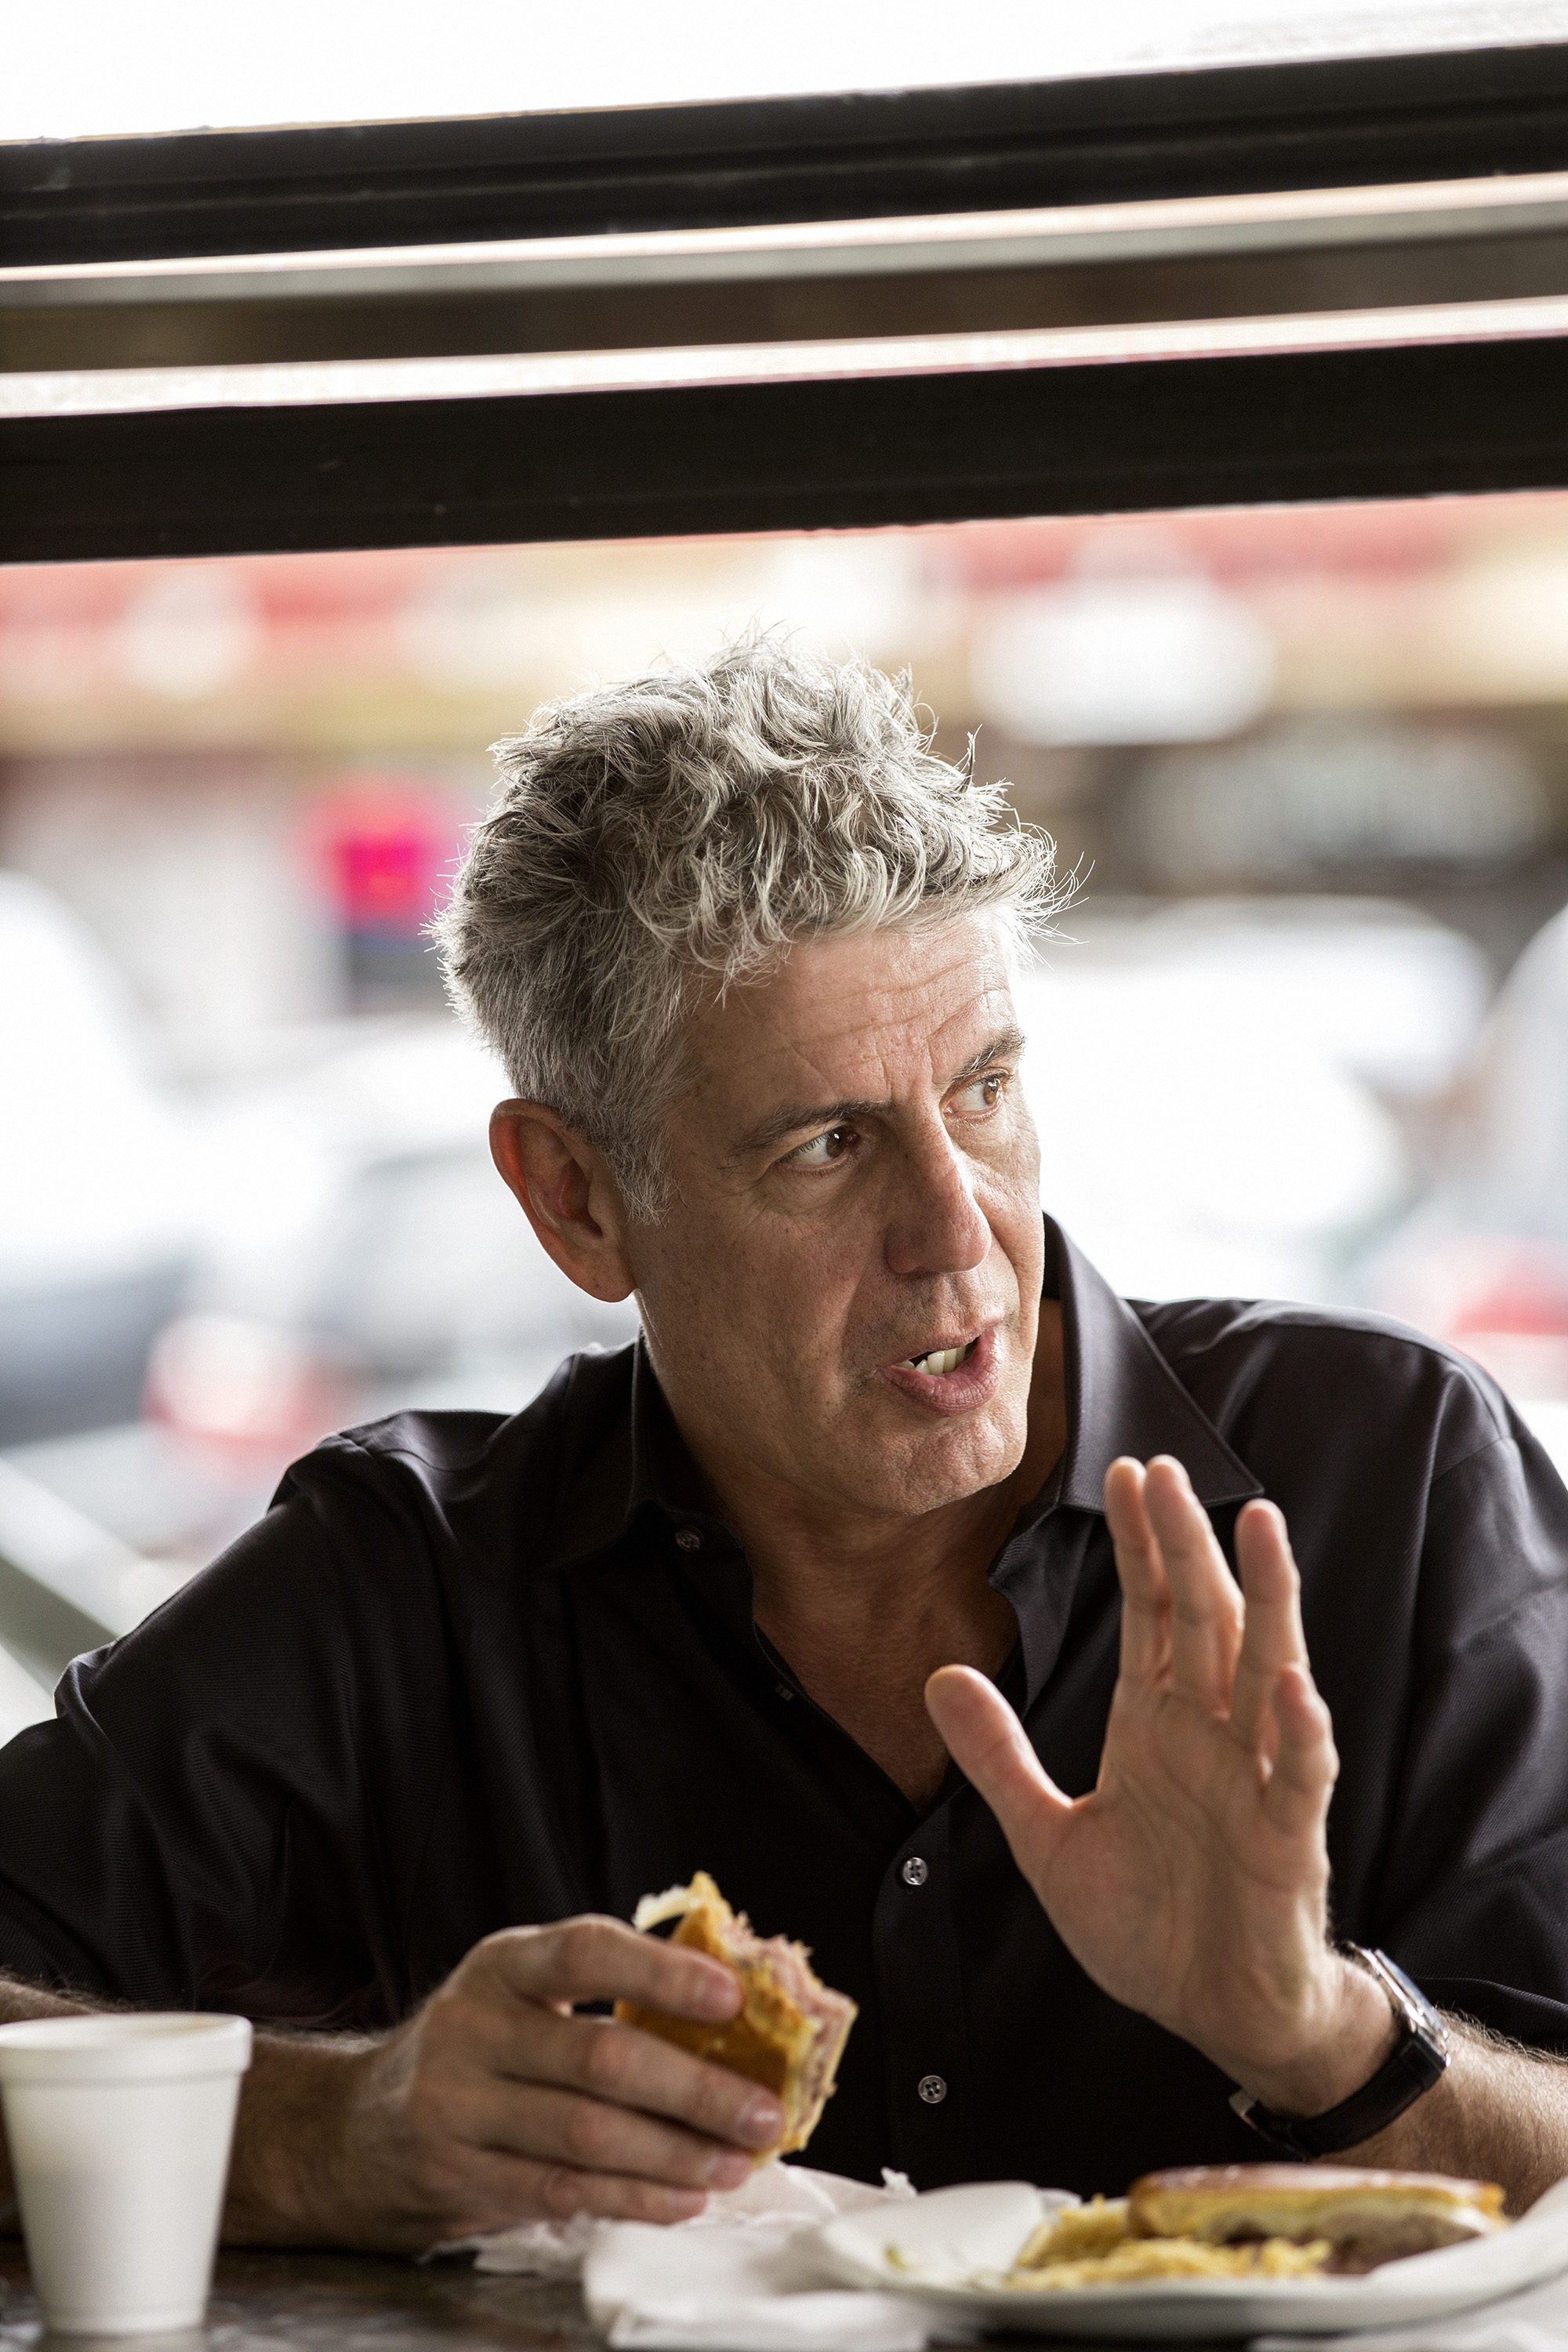 anthony bourdain kitchen confidential kohler undermount sinks talks career, state of food tv - the blade